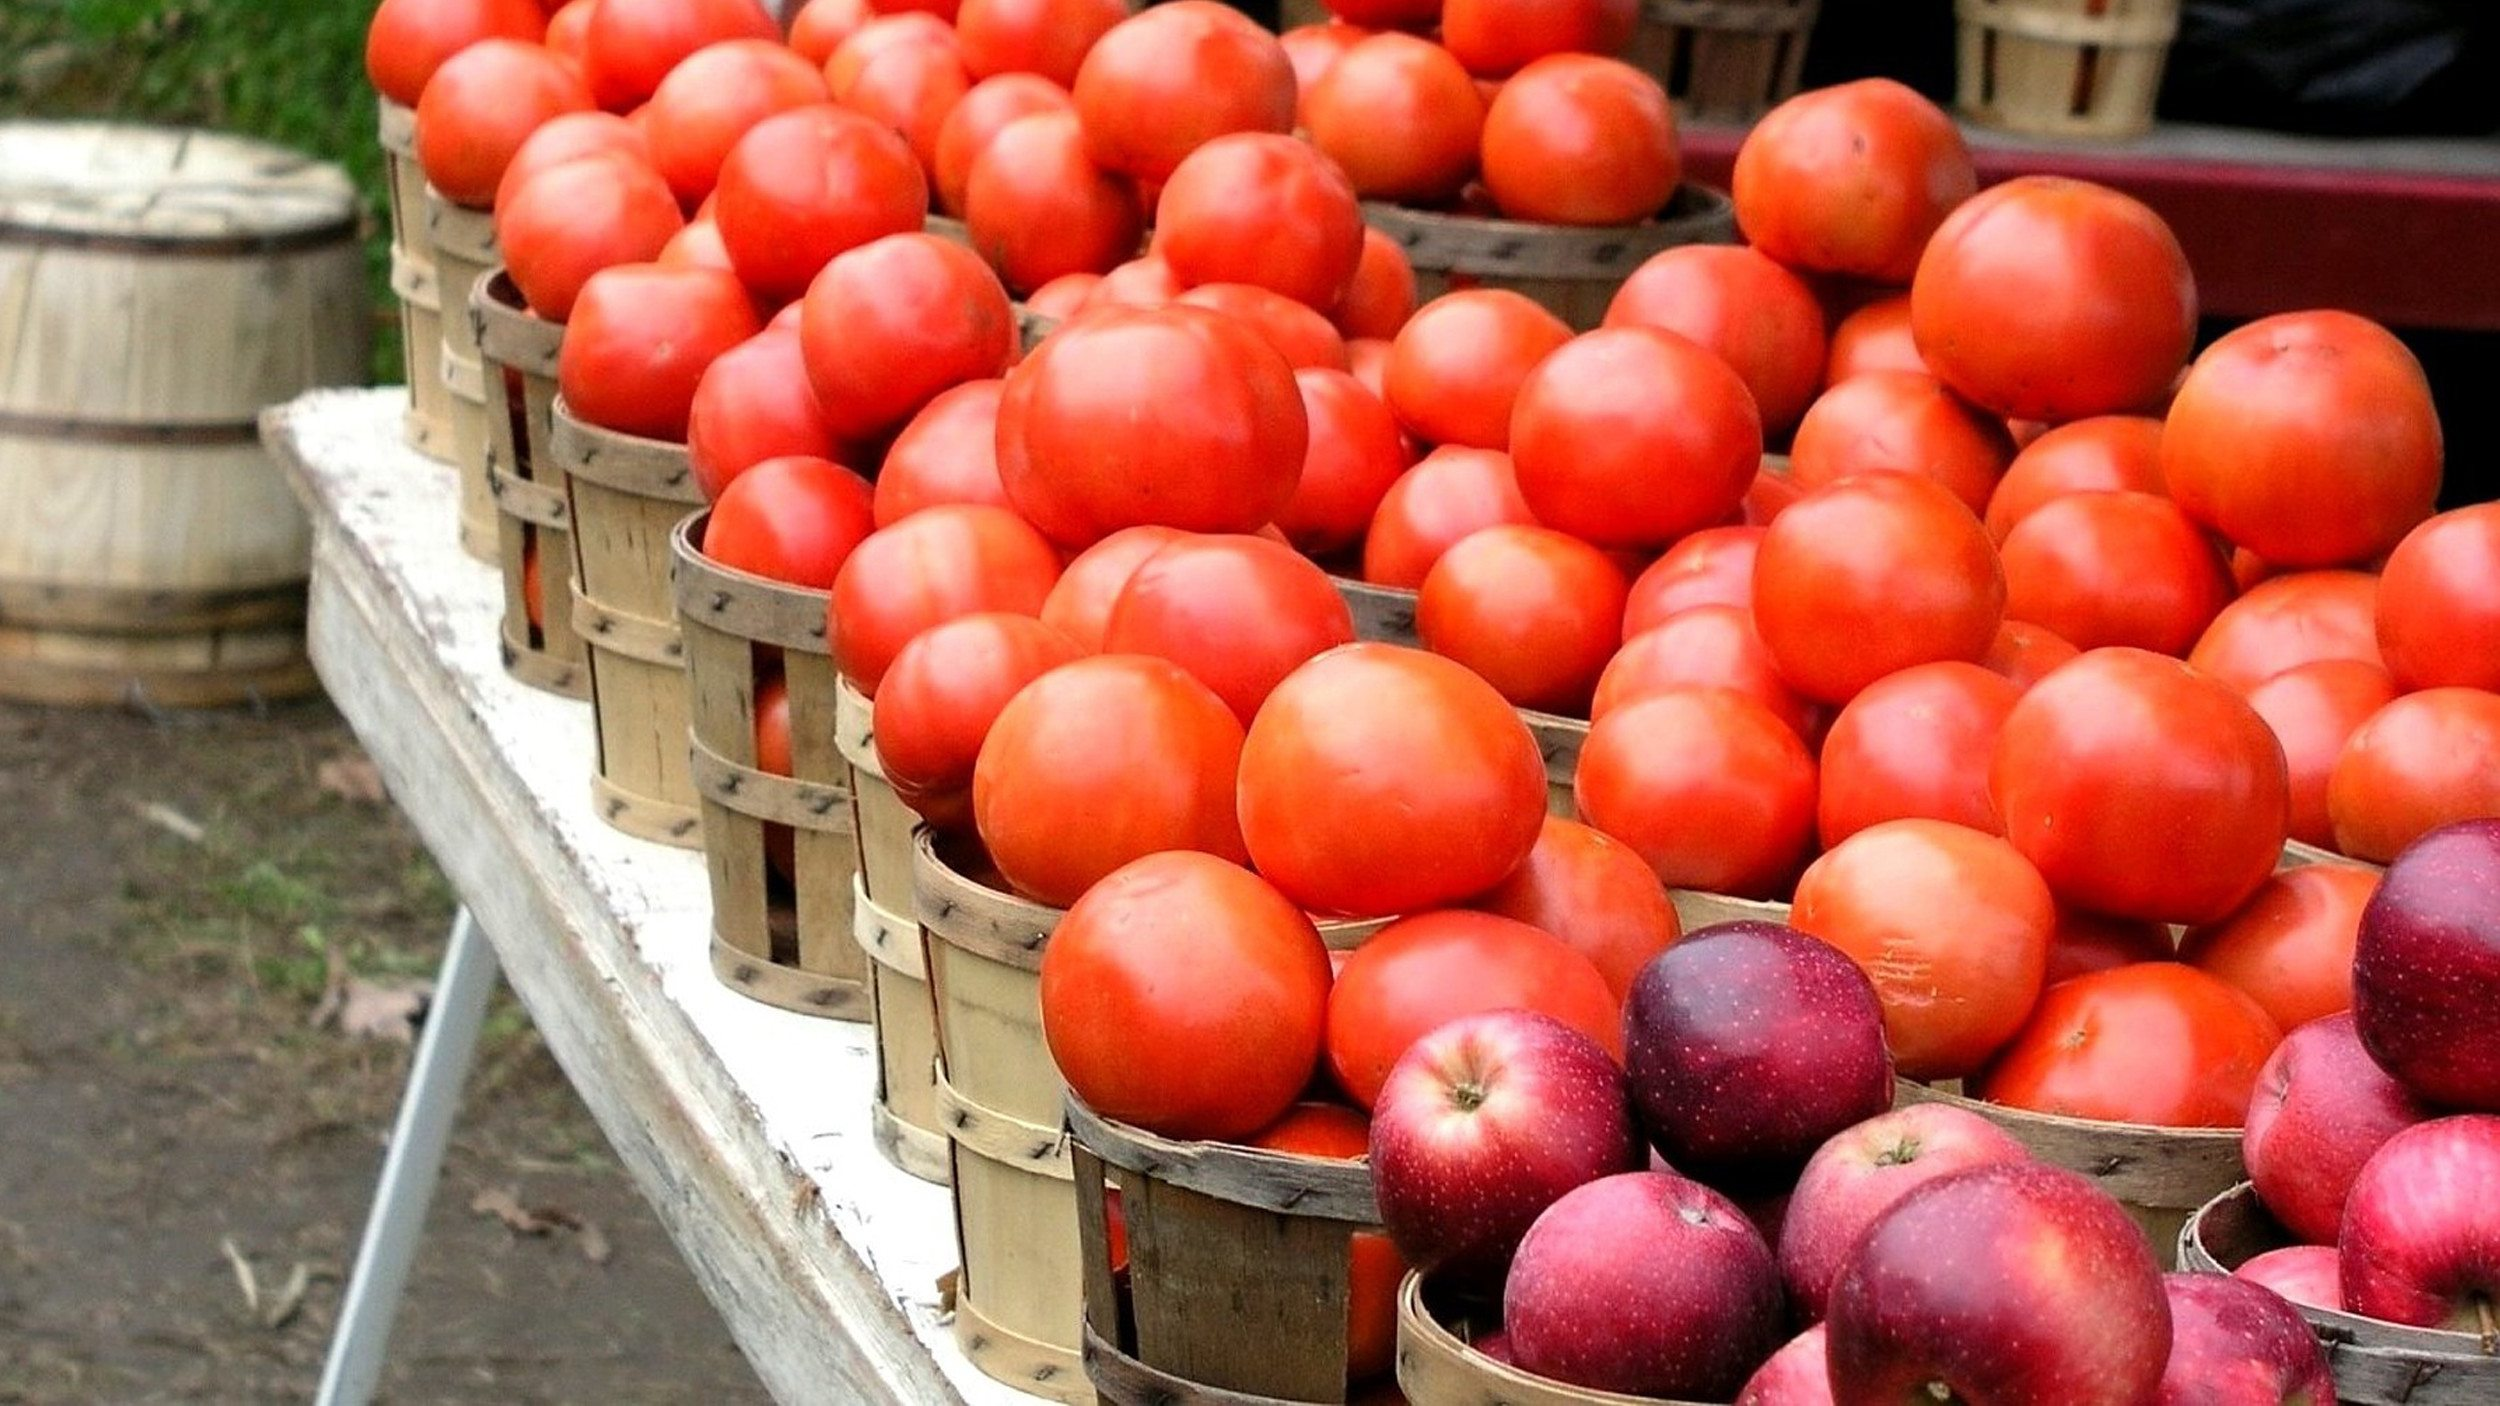 Baskets of ripe tomatoes and apples at a local produce stand